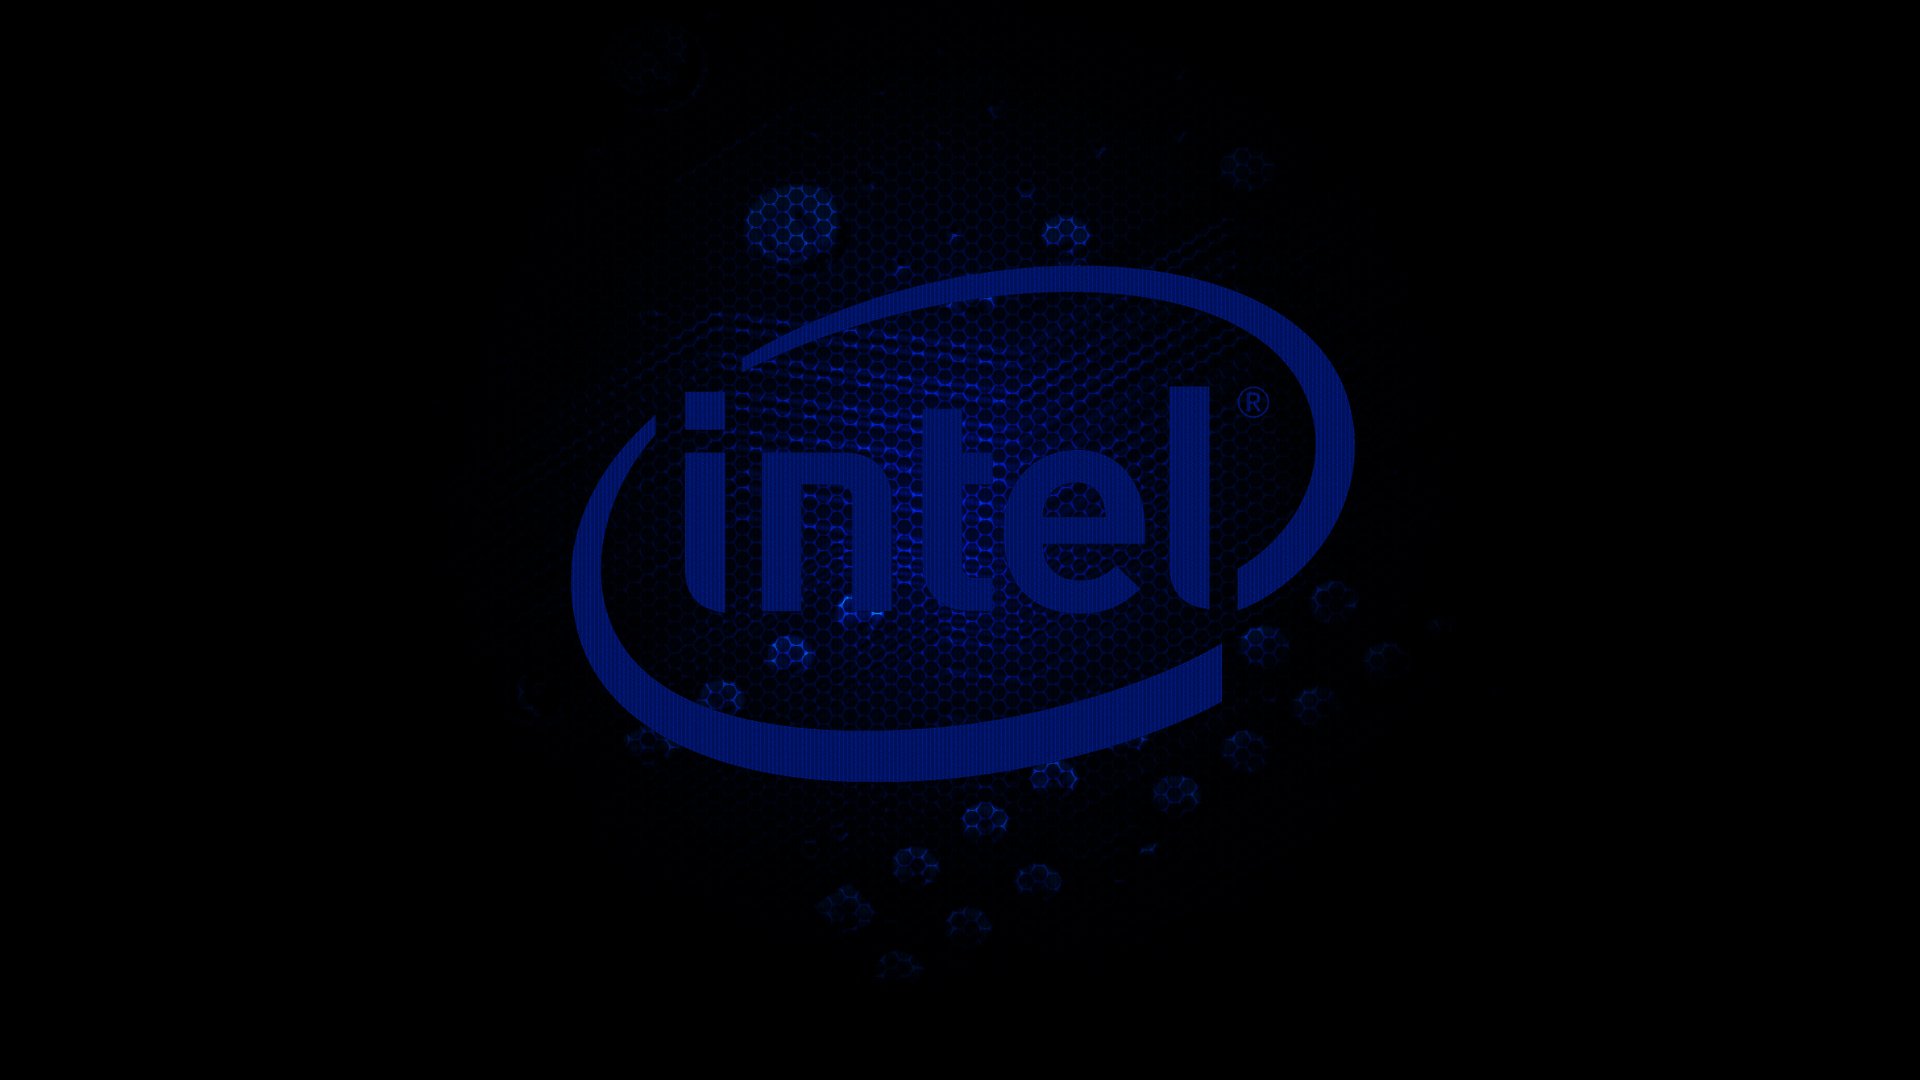 cool intel wallpaper 45408